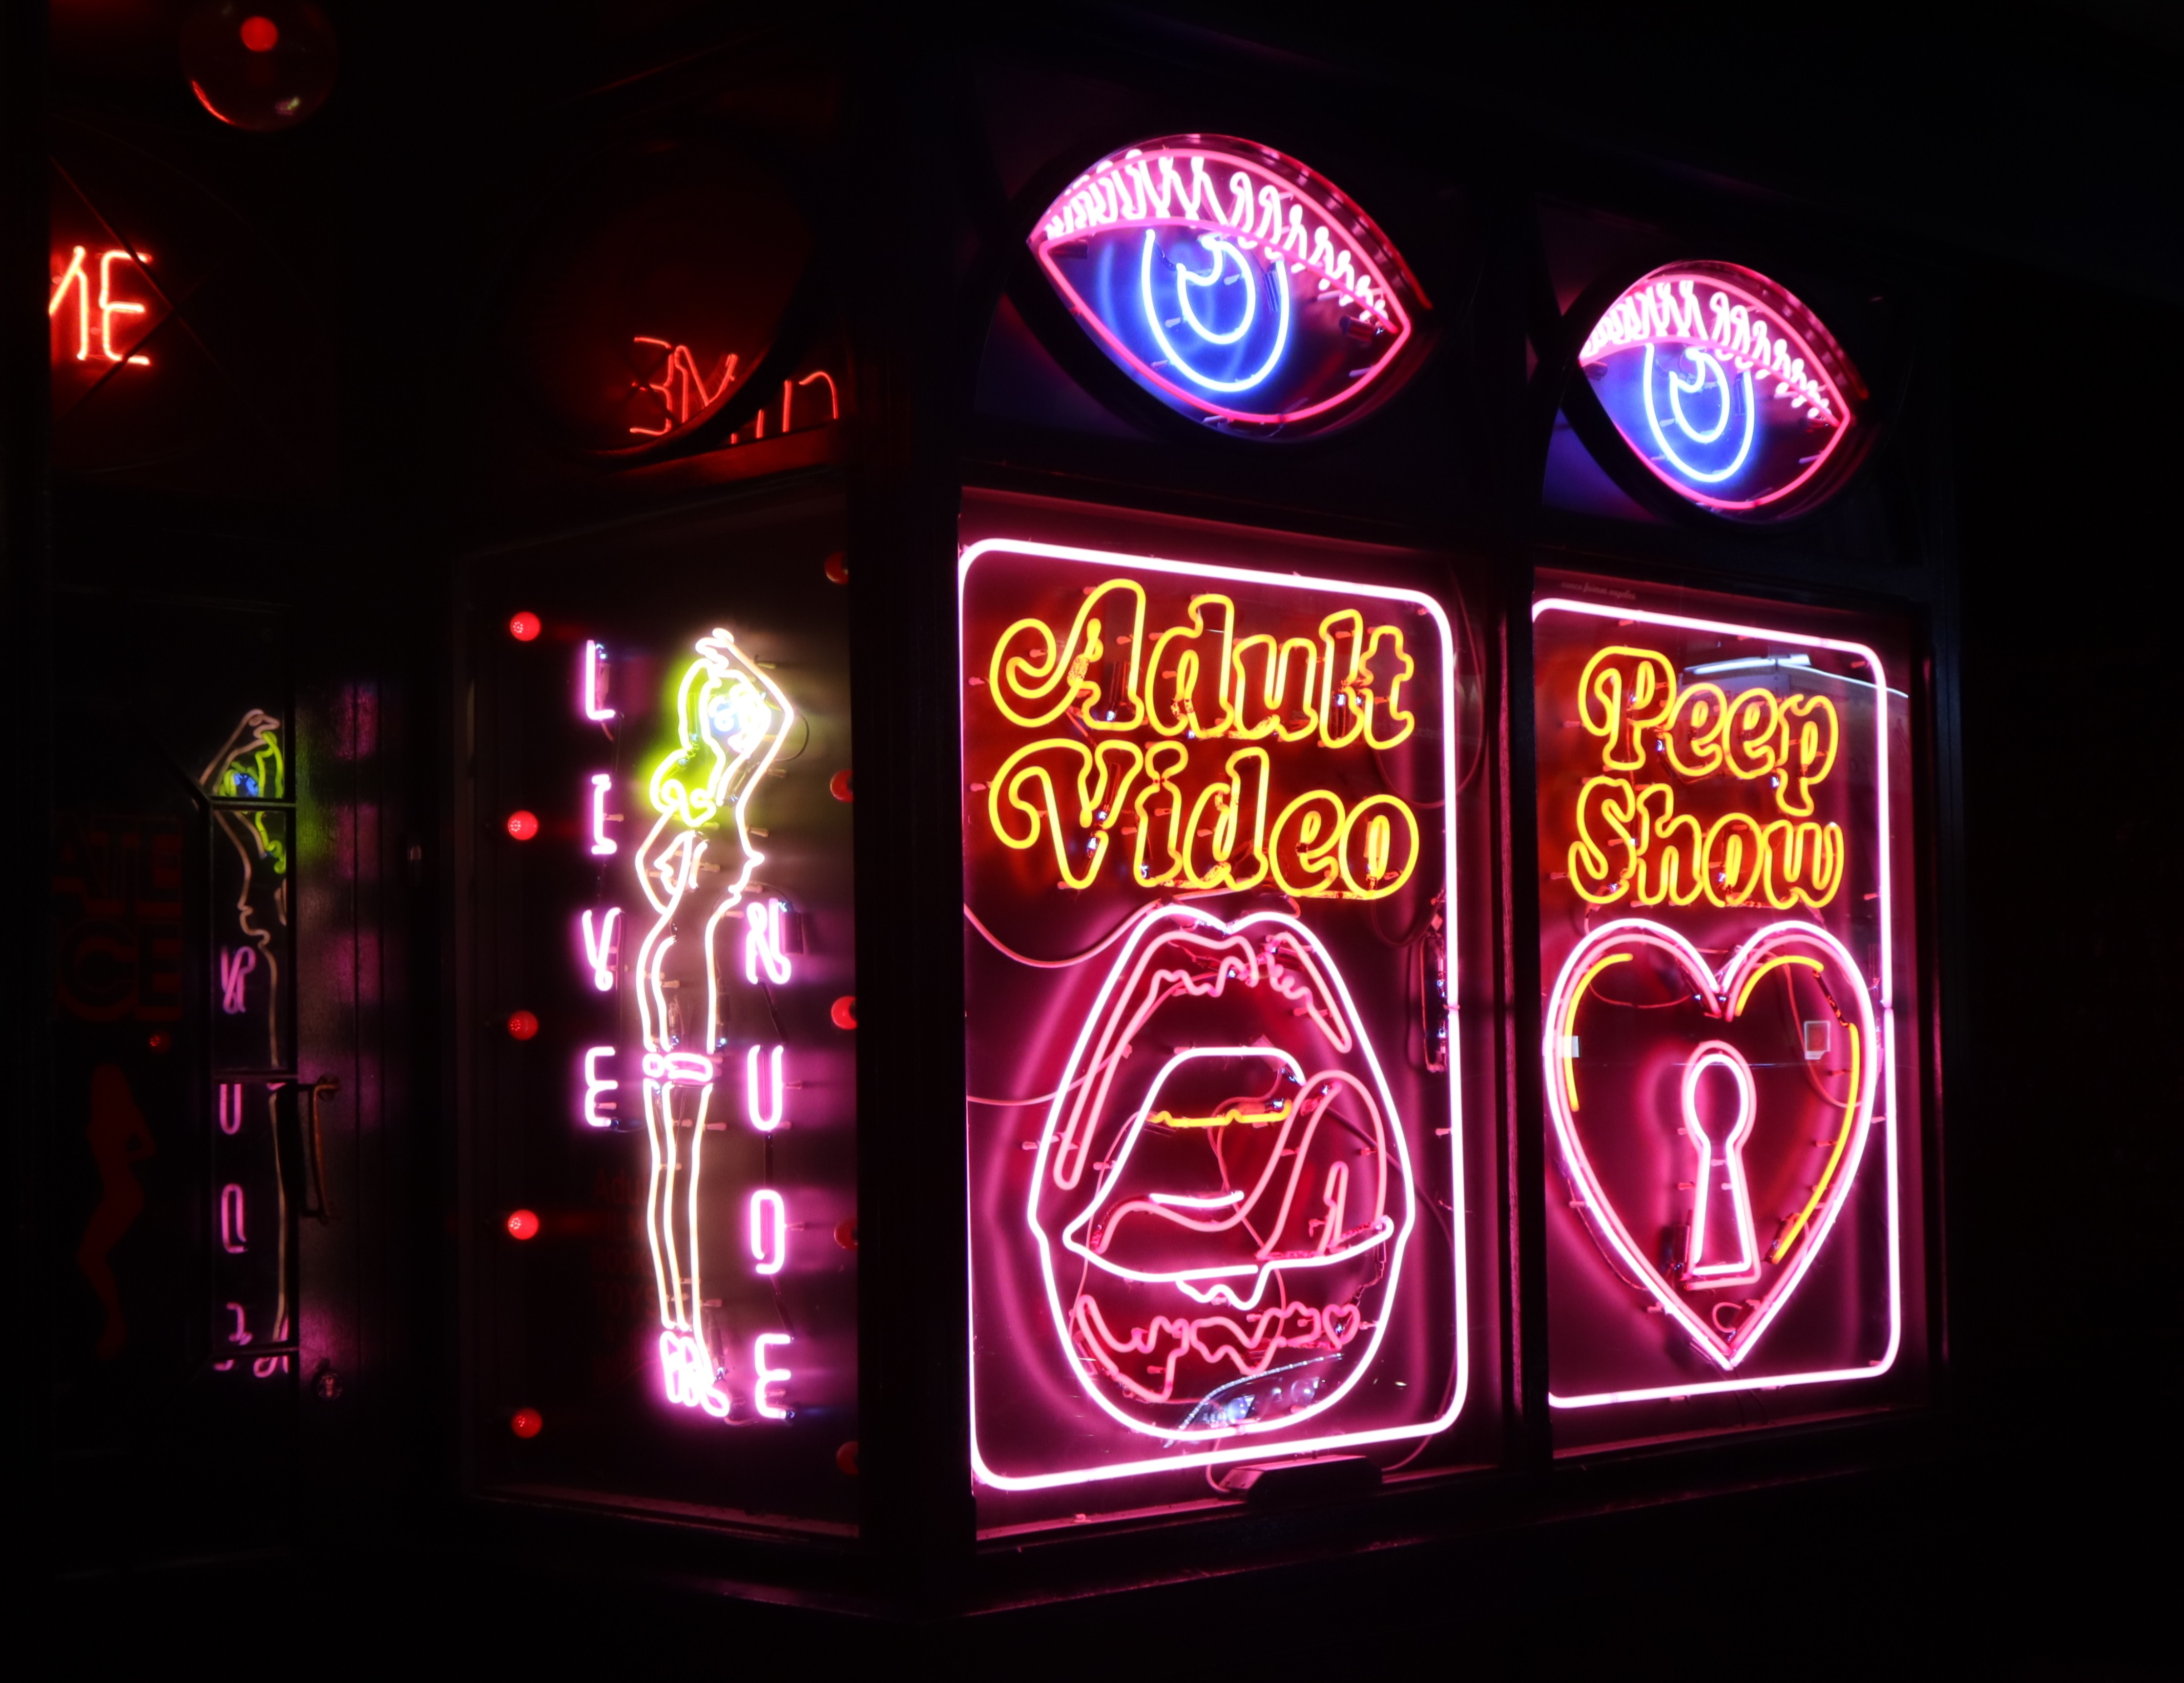 Adult Video Neo Sign at Soho London